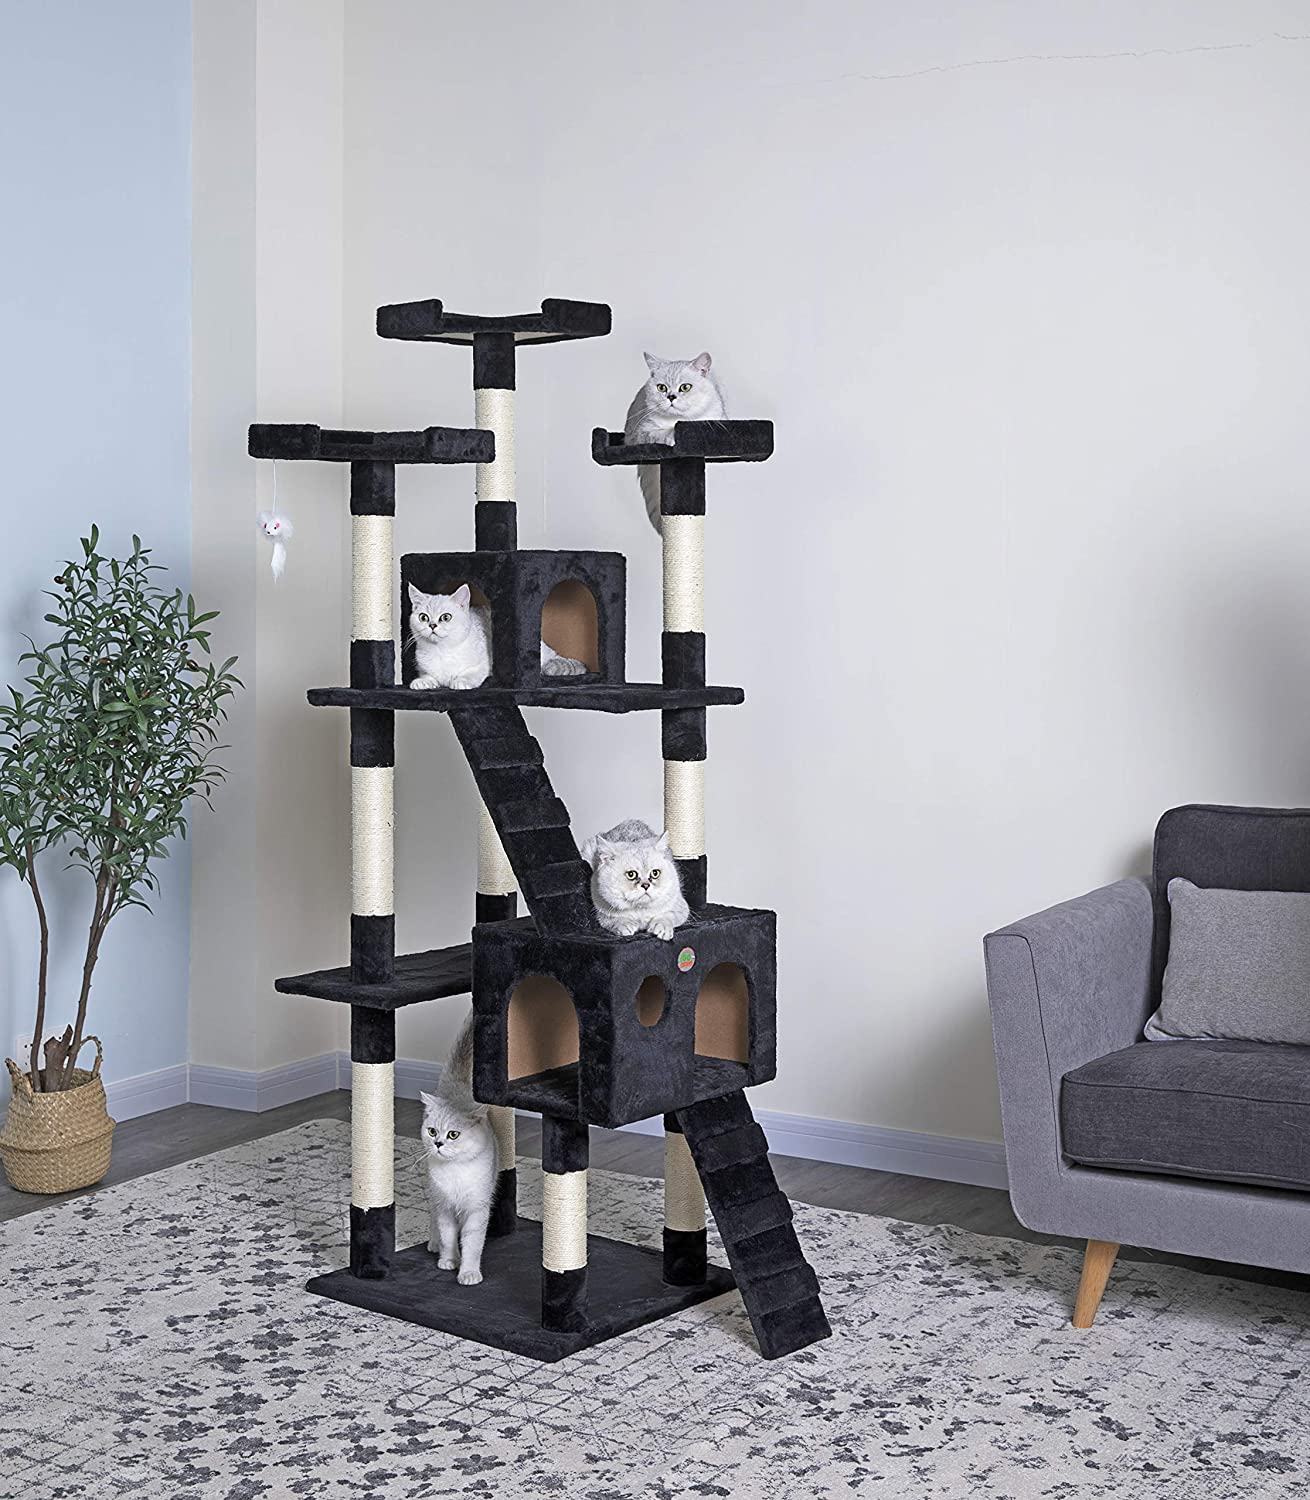 Go Pet Club Cat Tree, 33-Inch by 22-Inch by 72-Inch, Black : Cat Condo : Pet Supplies